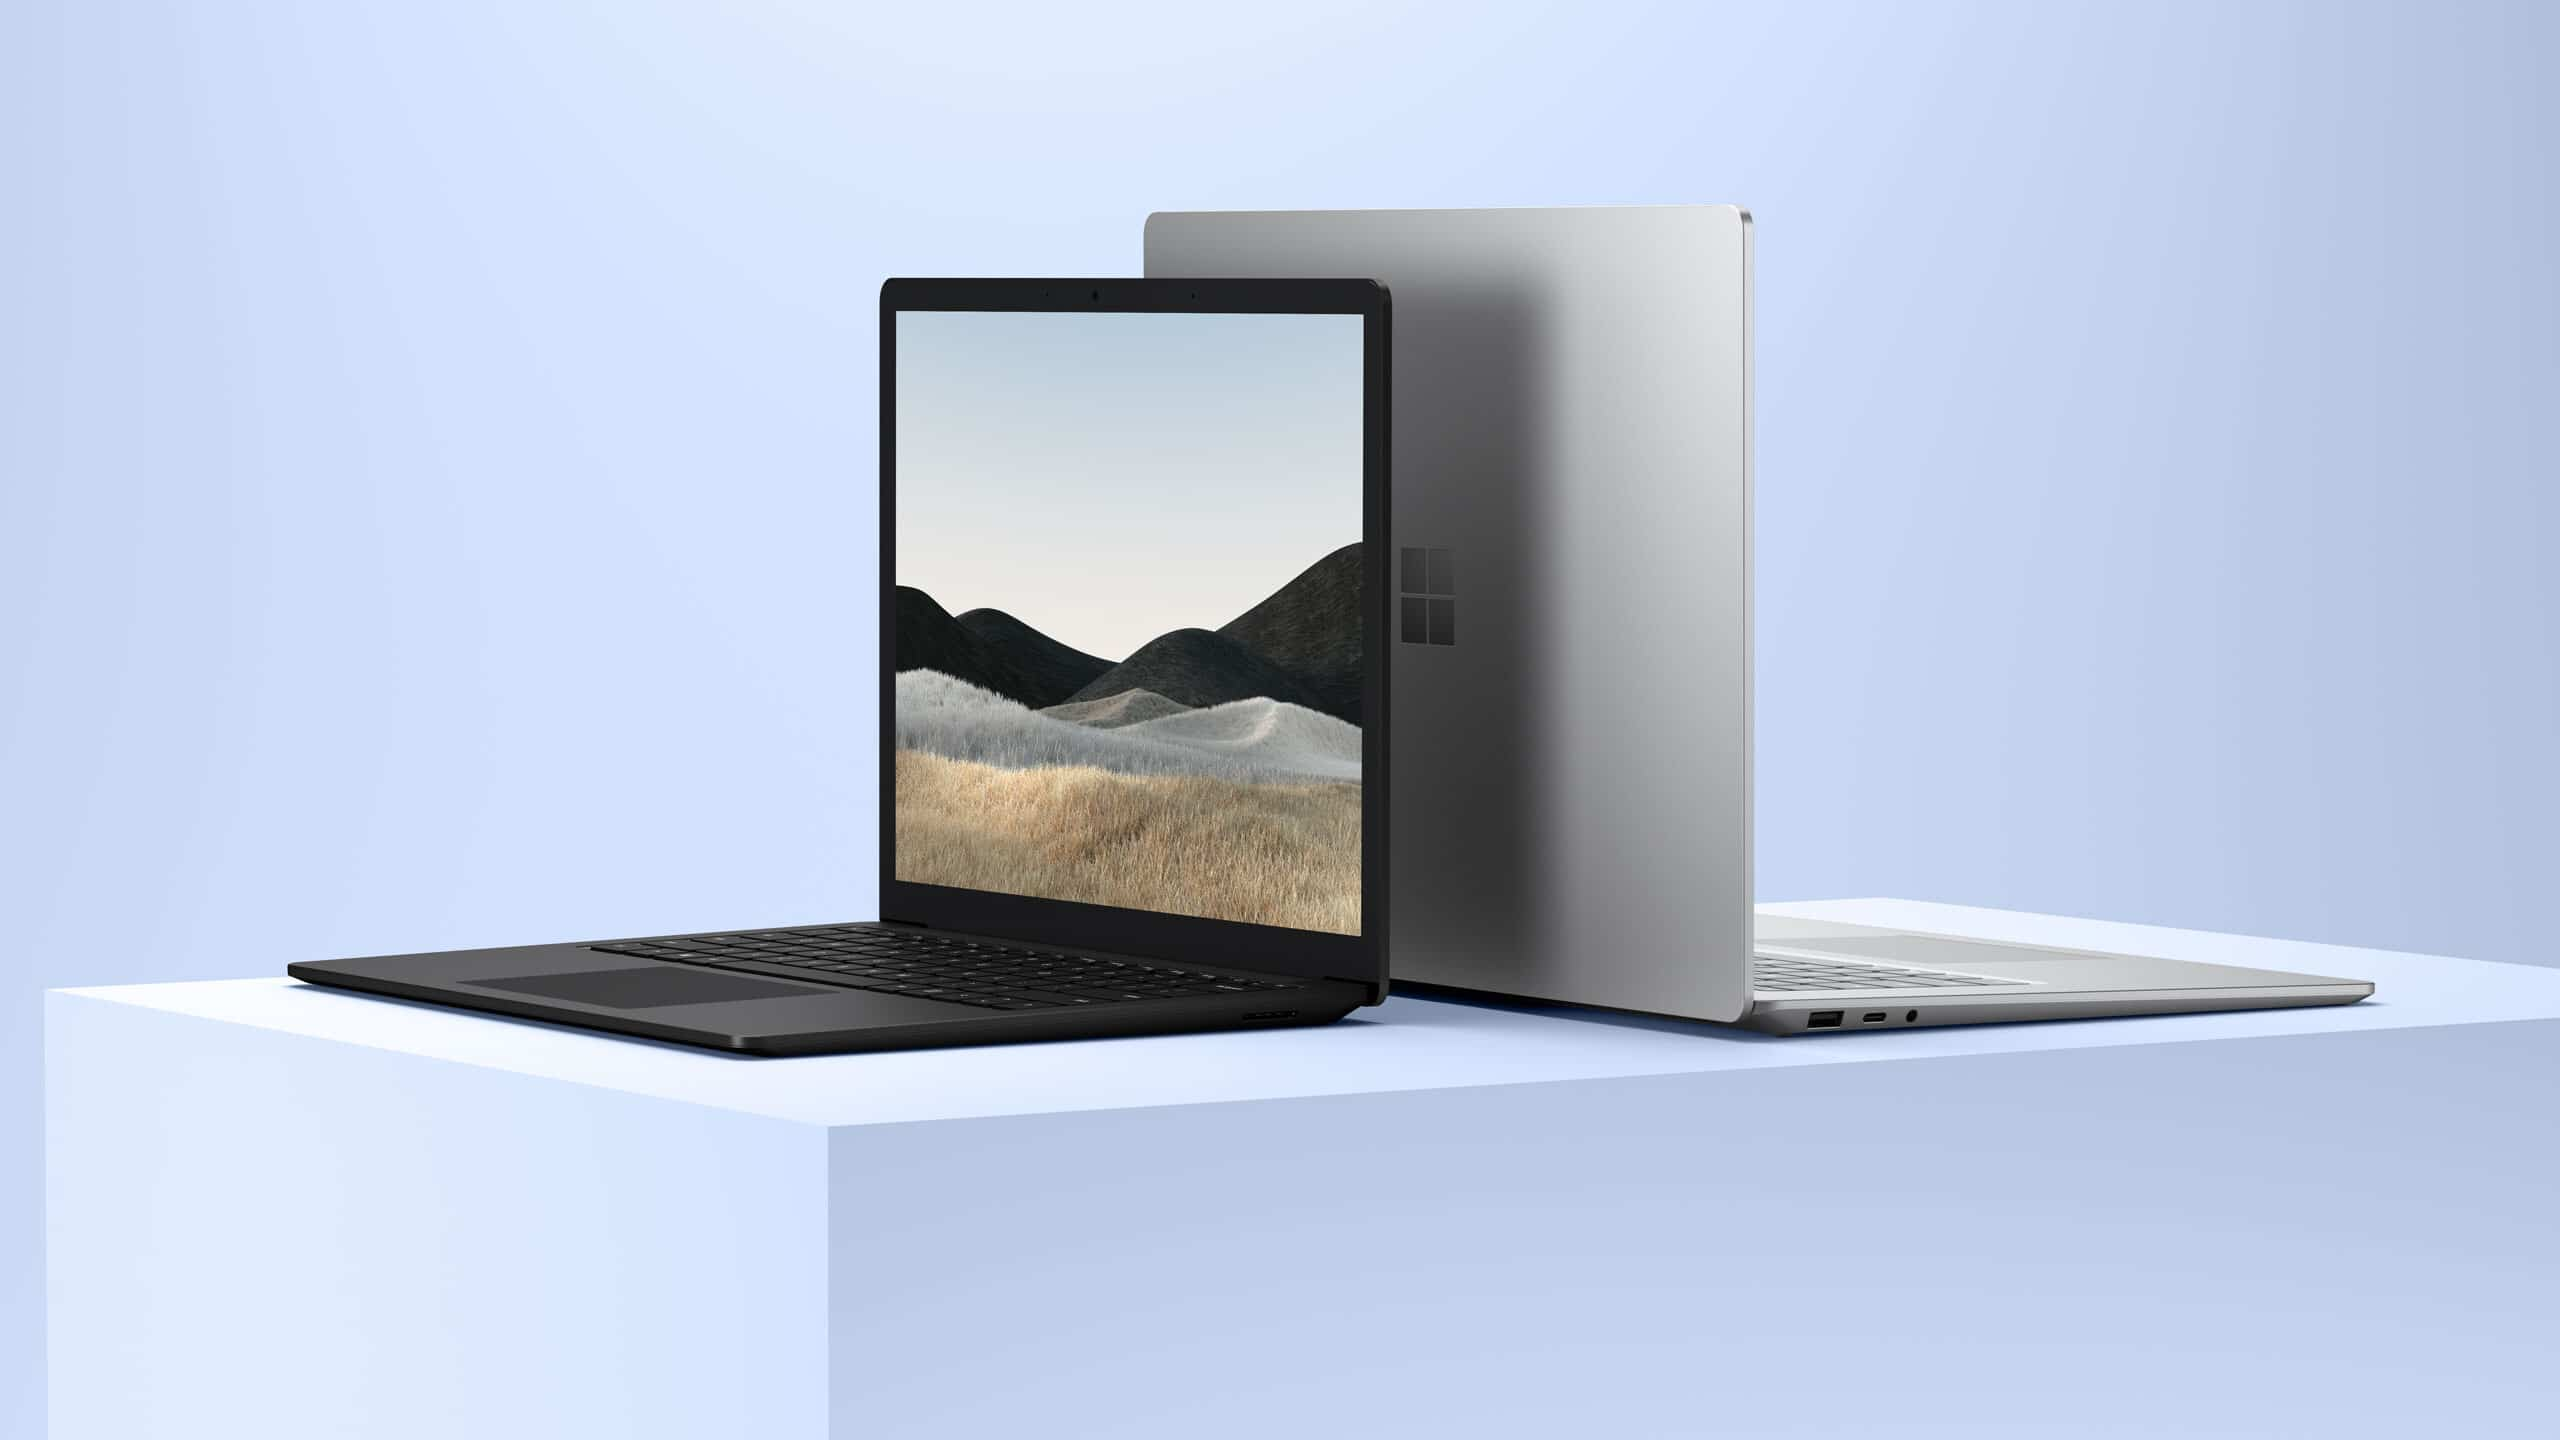 Microsoft lanza sus portátiles Surface Laptop 4 con CPUs AMD Ryzen 4000 o Intel Tiger Lake